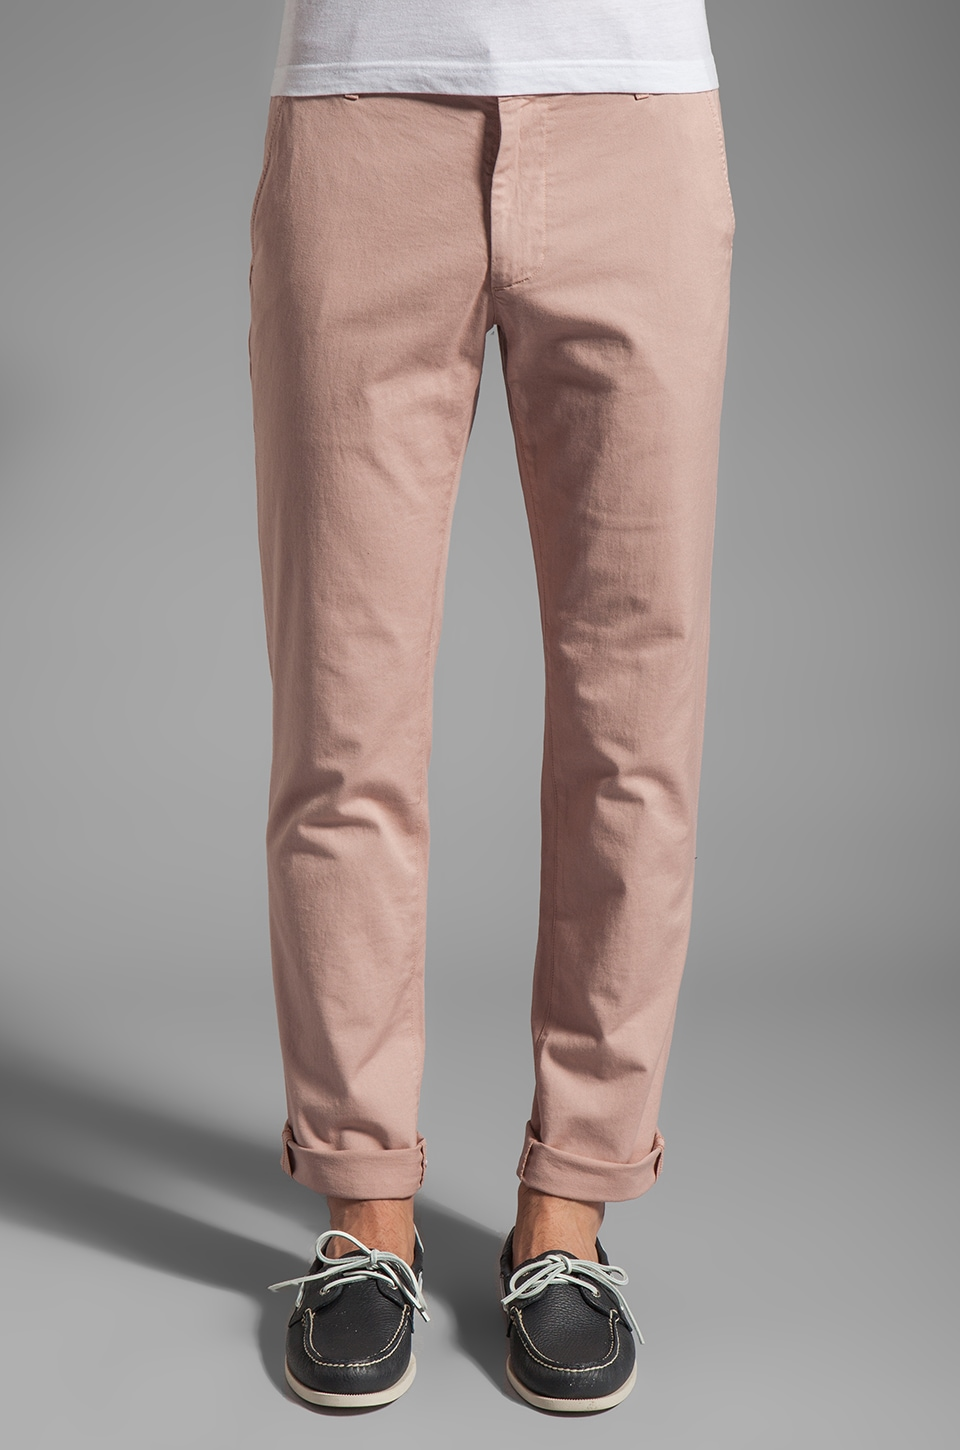 AG Adriano Goldschmied The Slim Khaki in Misty Rose